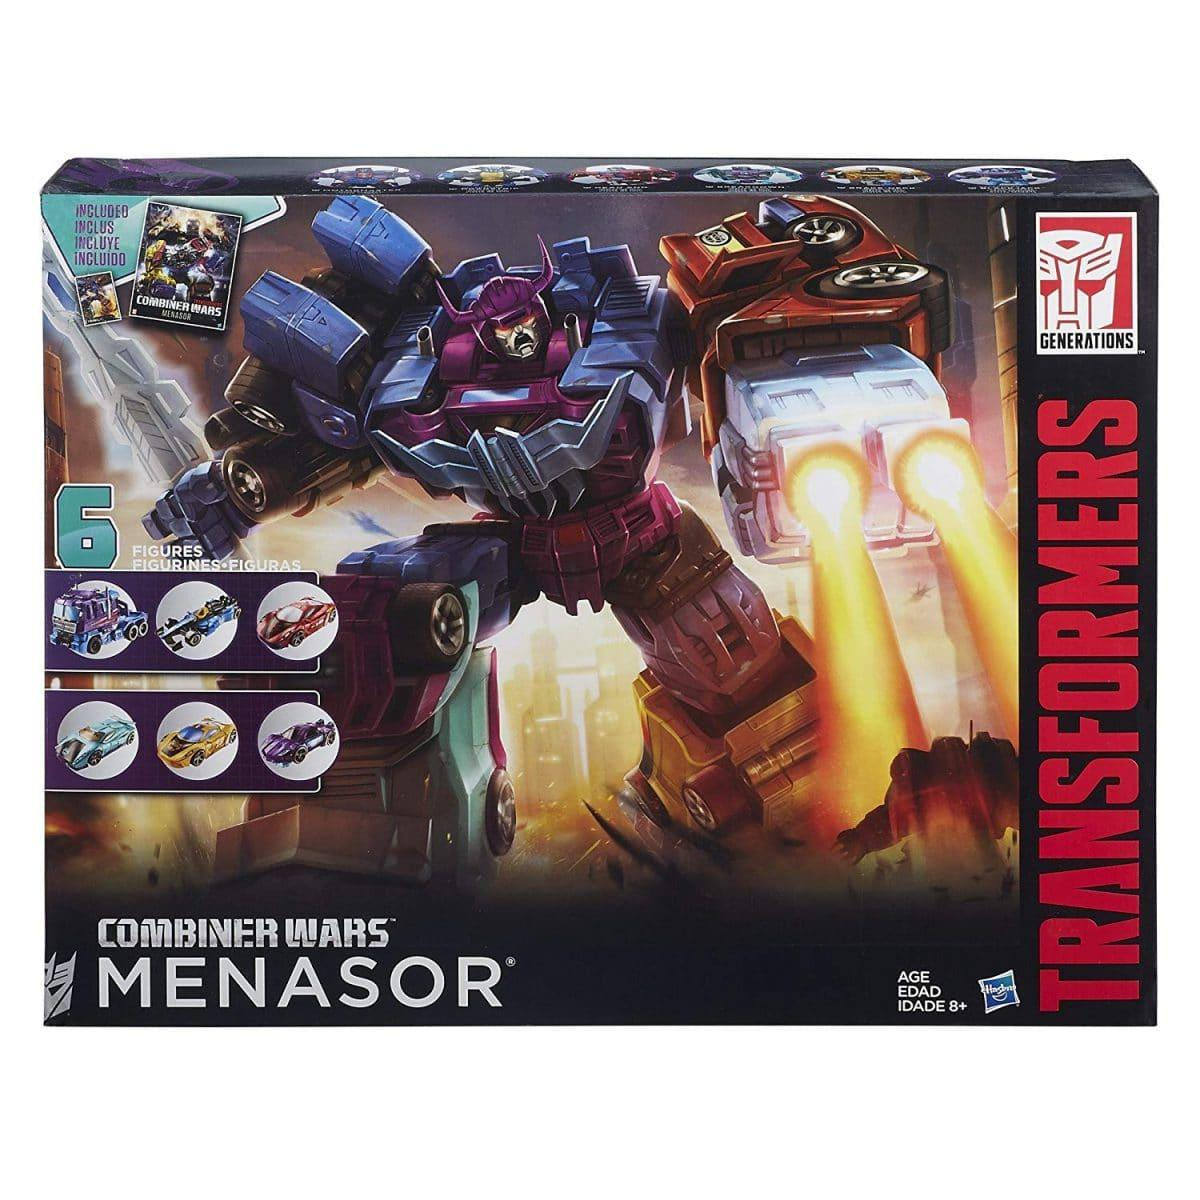 Transformers Generations Combiner Wars Mensor Collection Pack